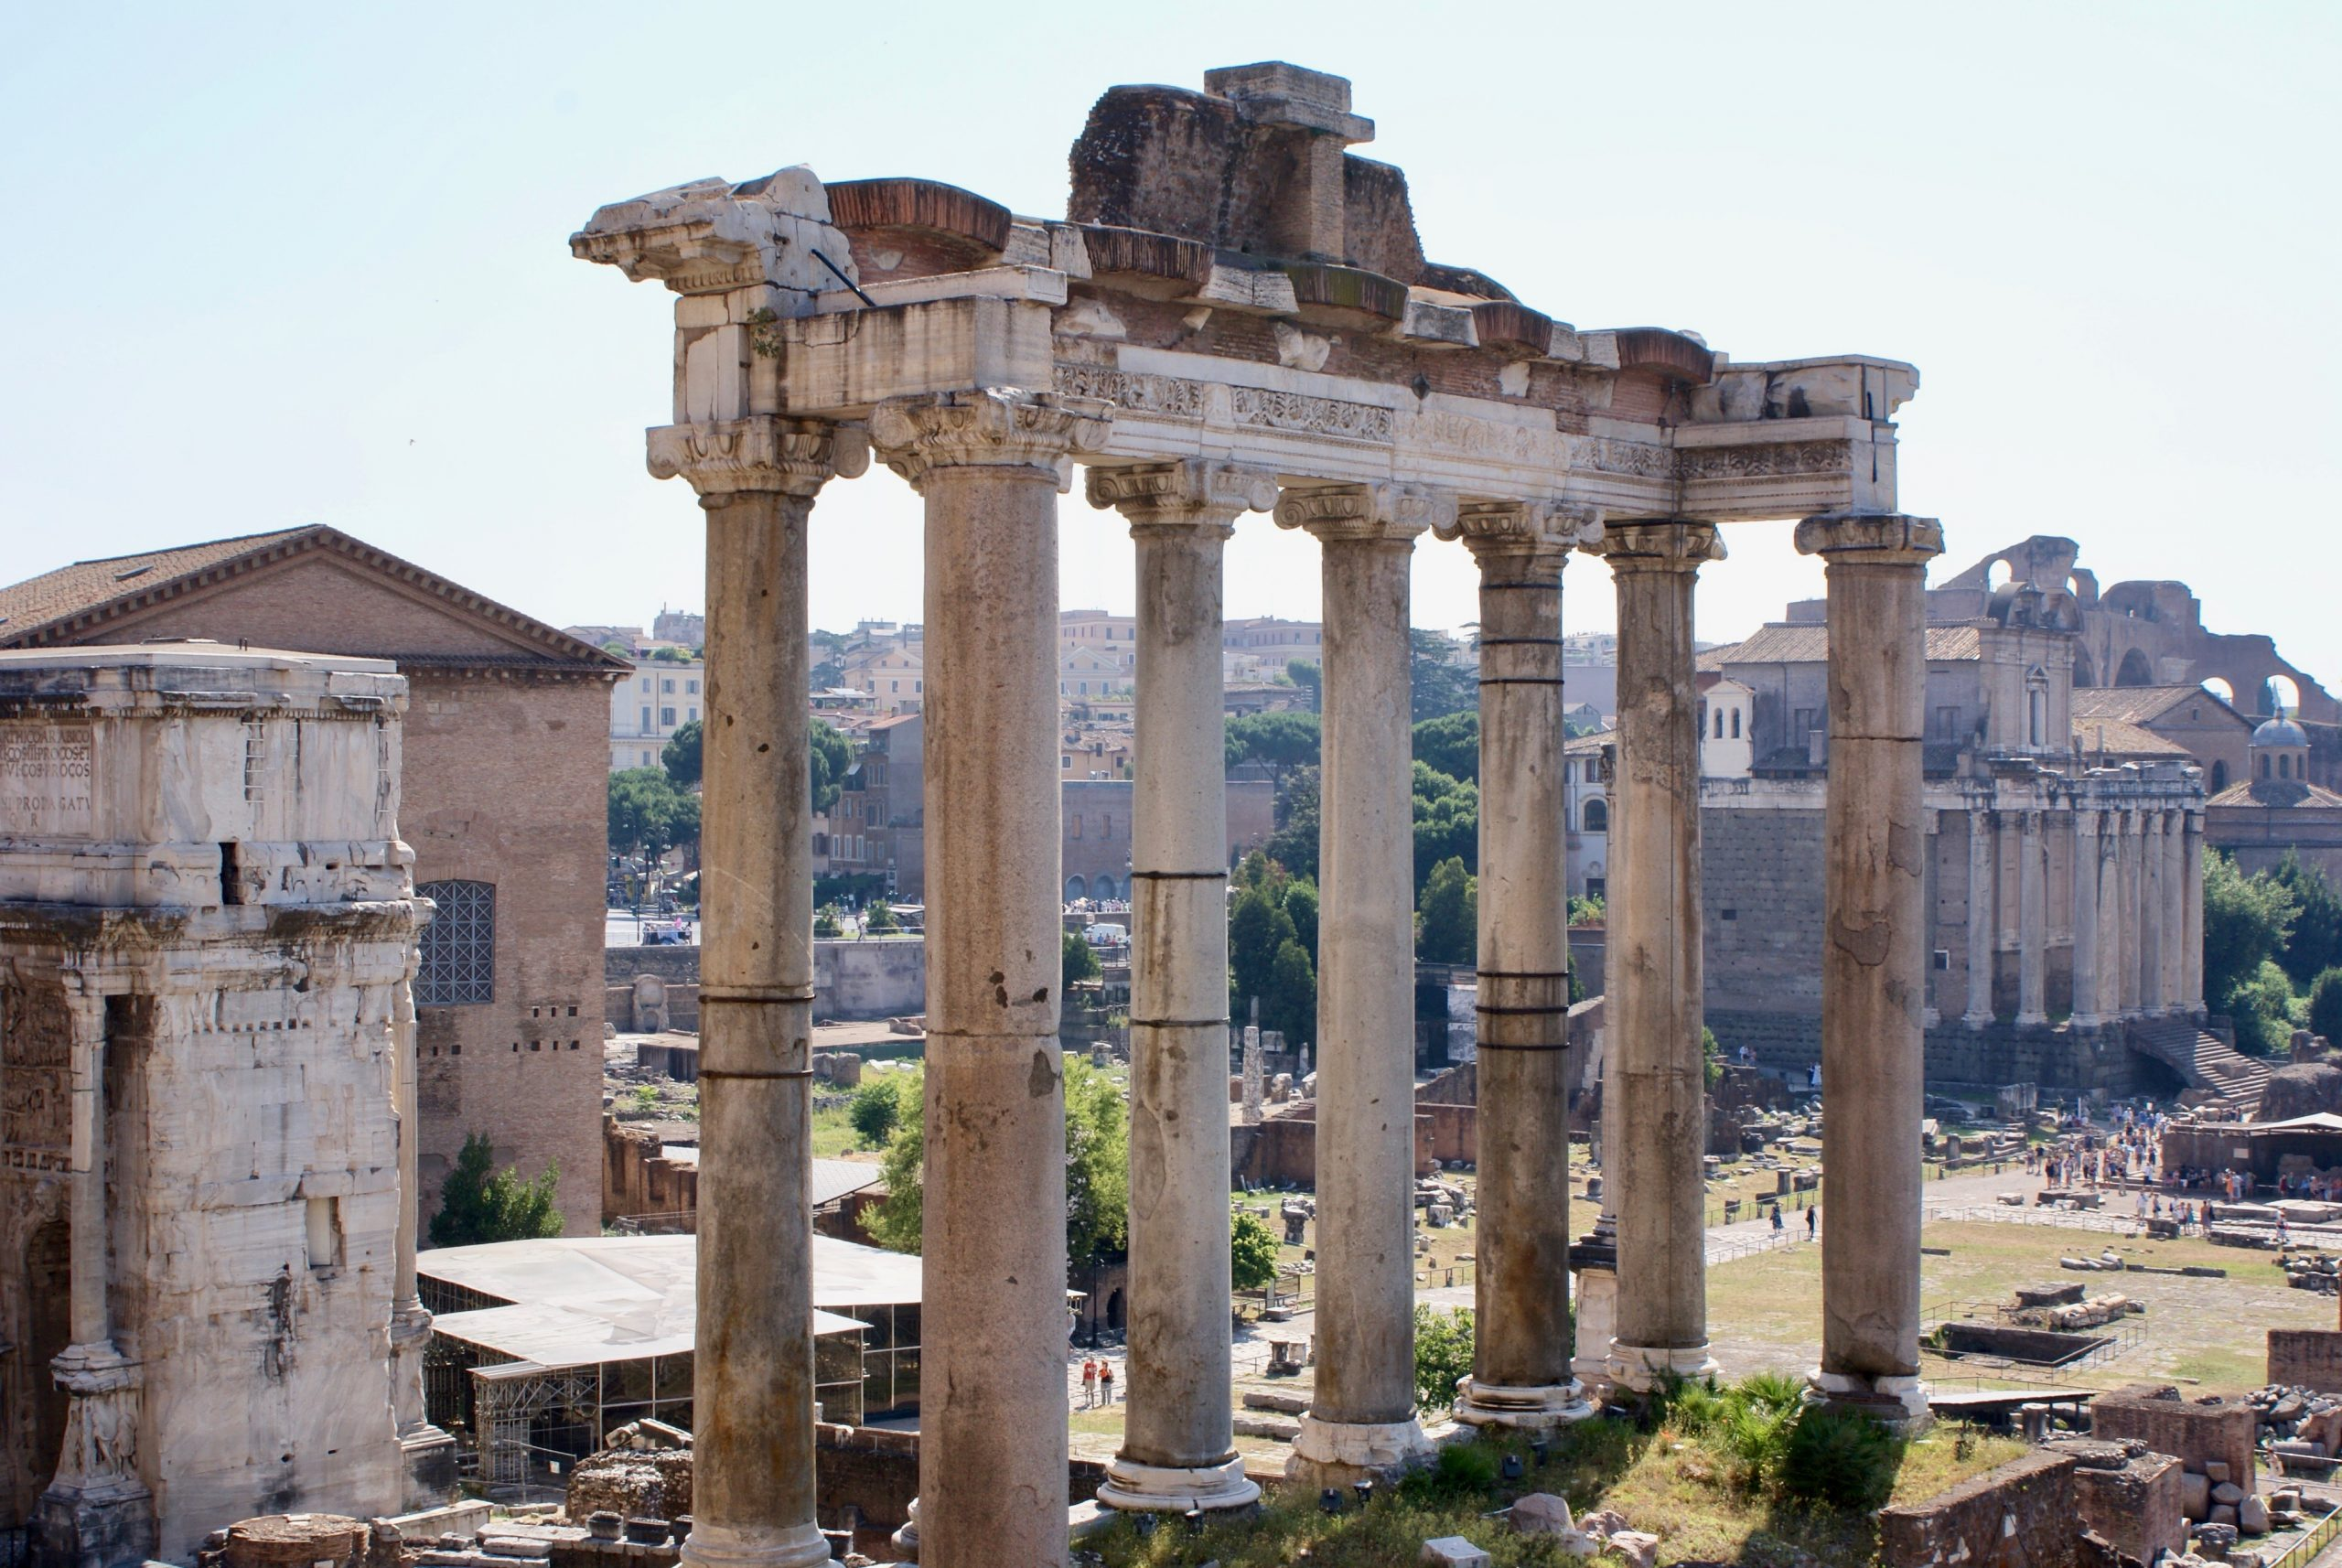 The Forum in Rome shows the remains of an ancient civilization, Rome, Italy